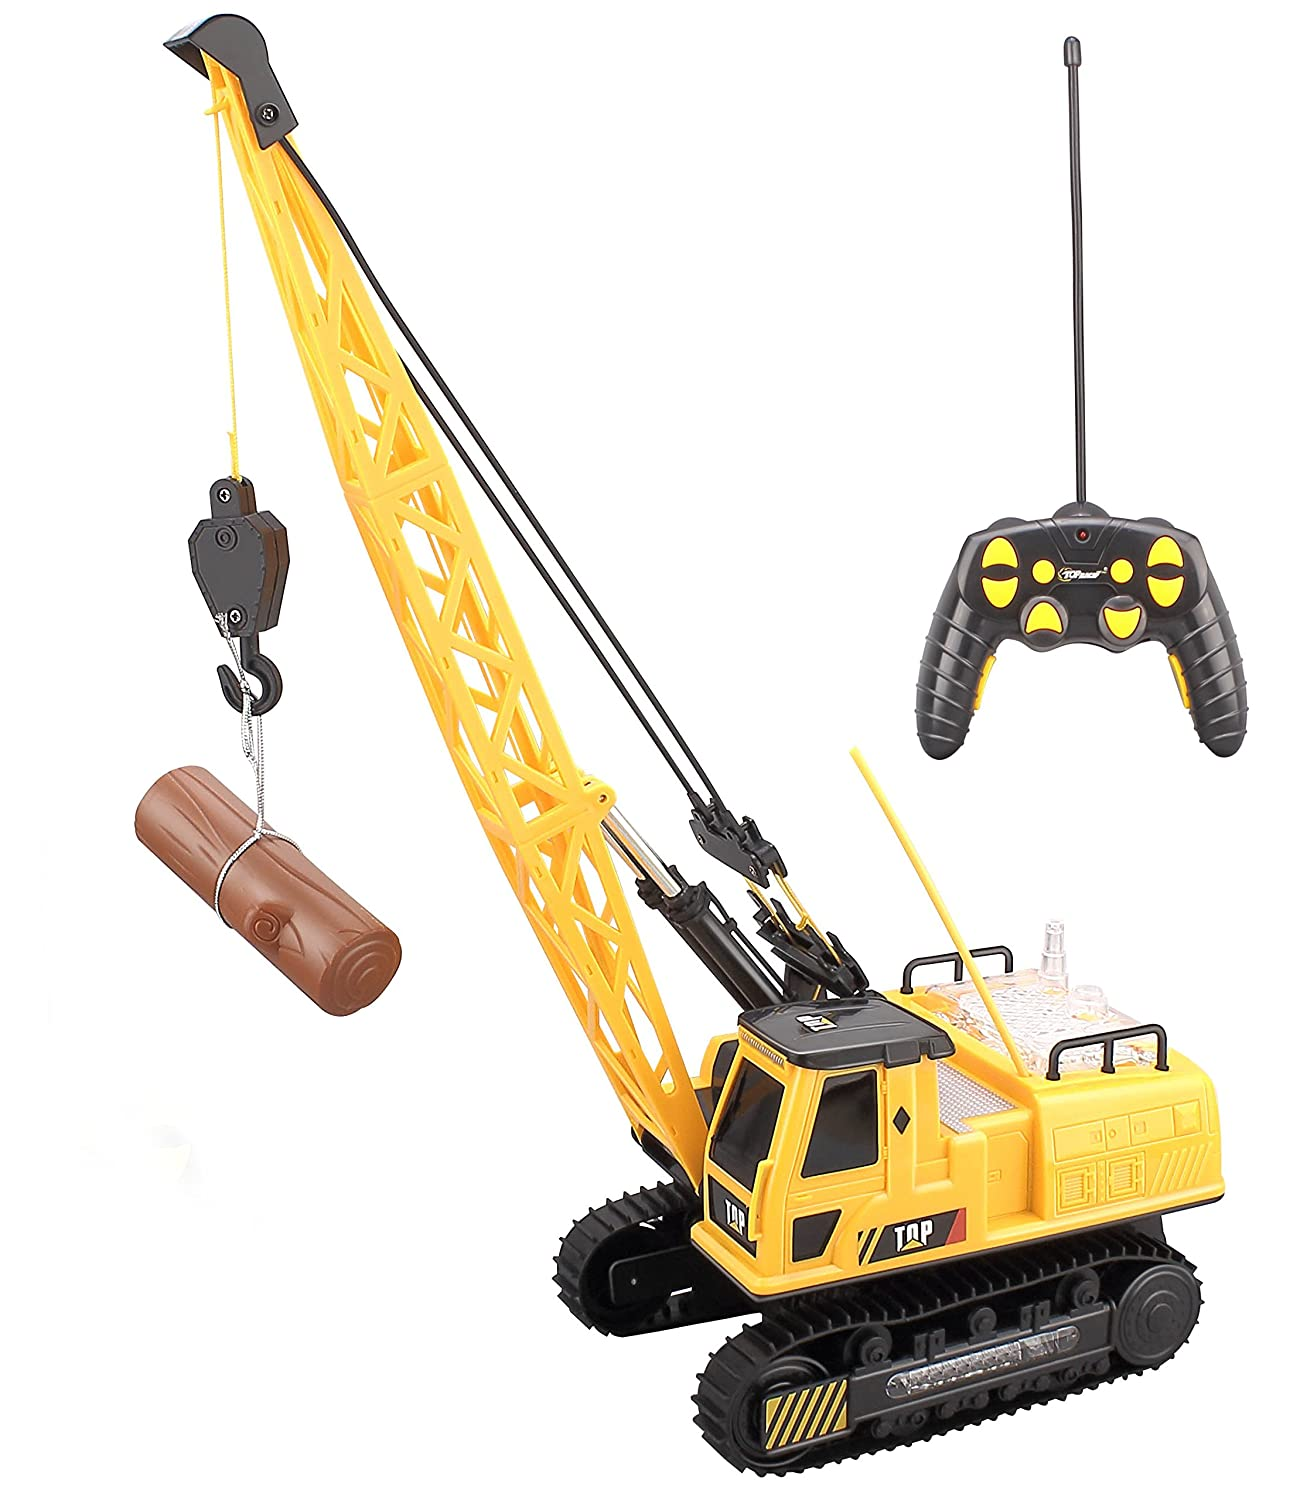 Top 9 Best Remote Control Cranes Toys Reviews in 2020 1